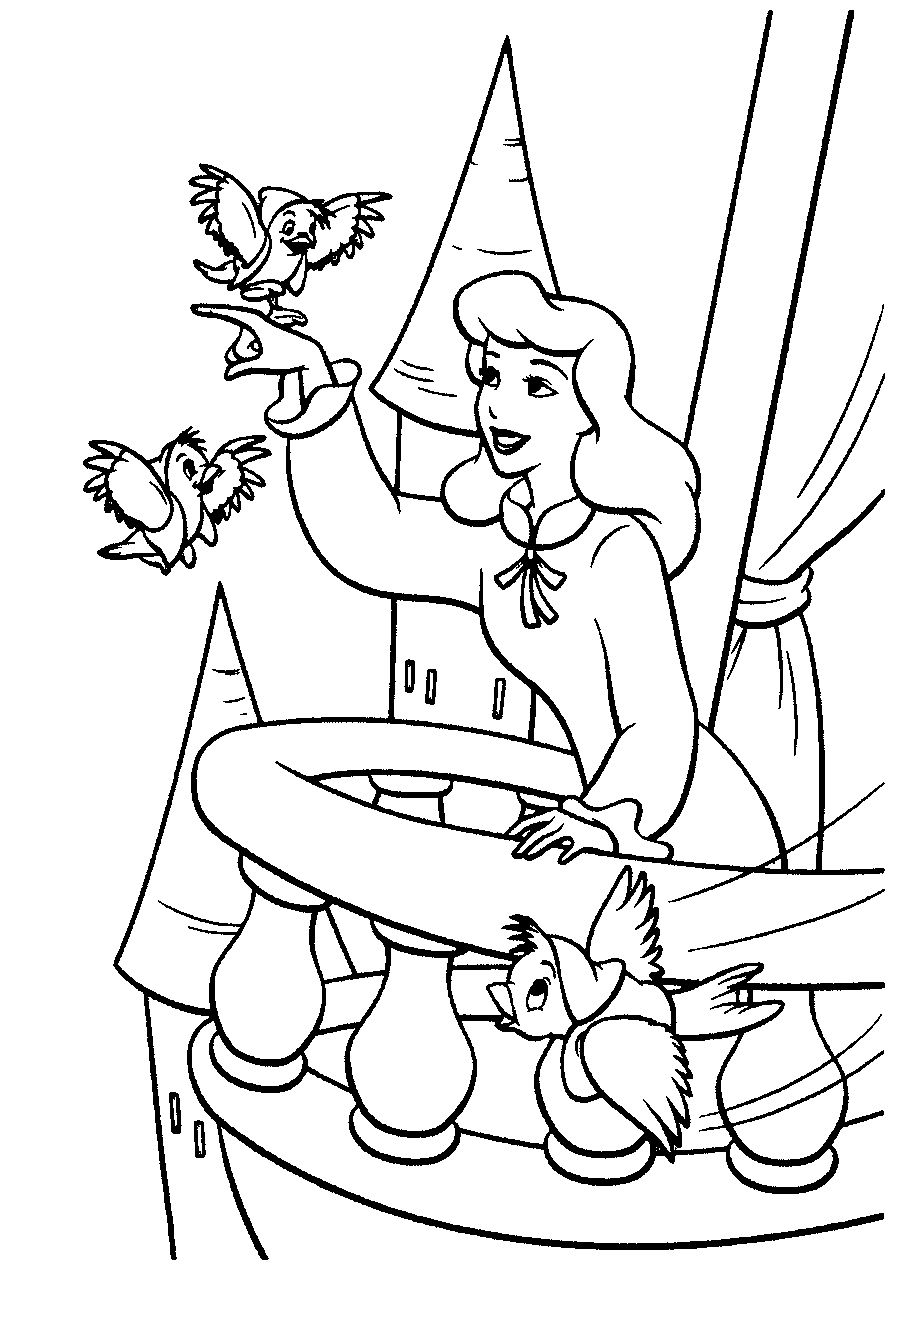 fans of cinderella will love this coloring sheet to print and